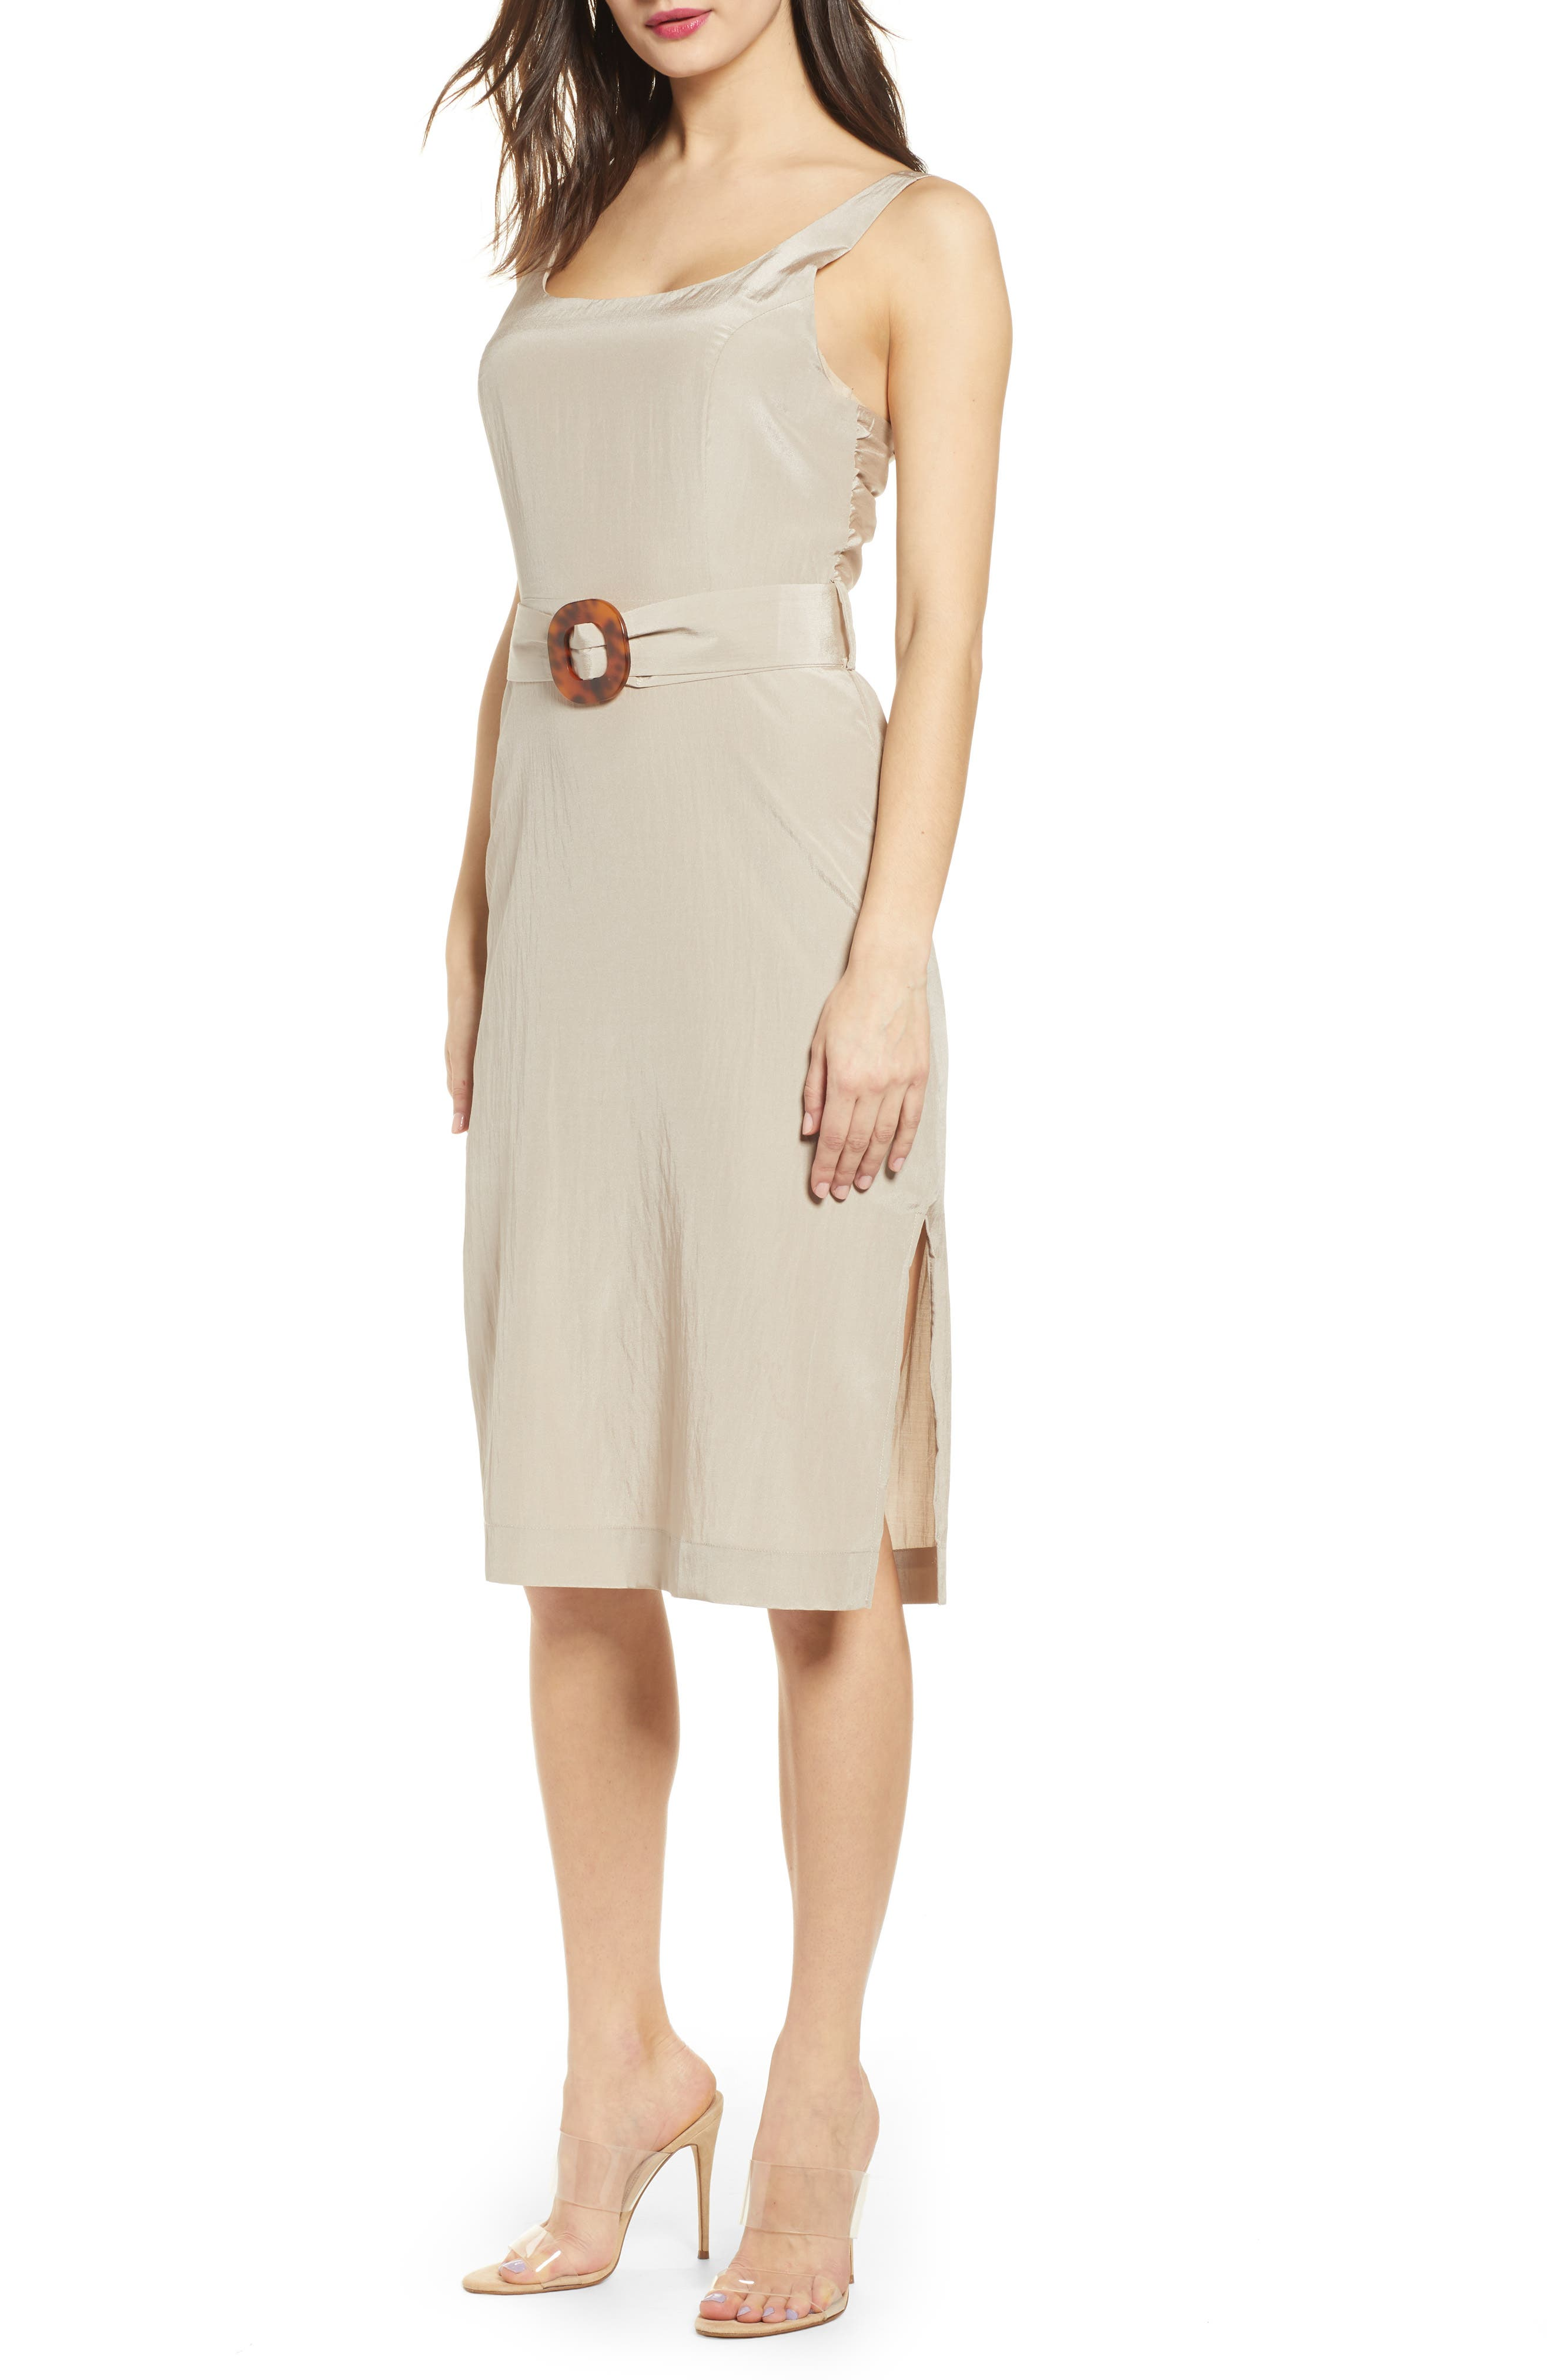 J.o.a. Back Tie Midi Dress, Beige